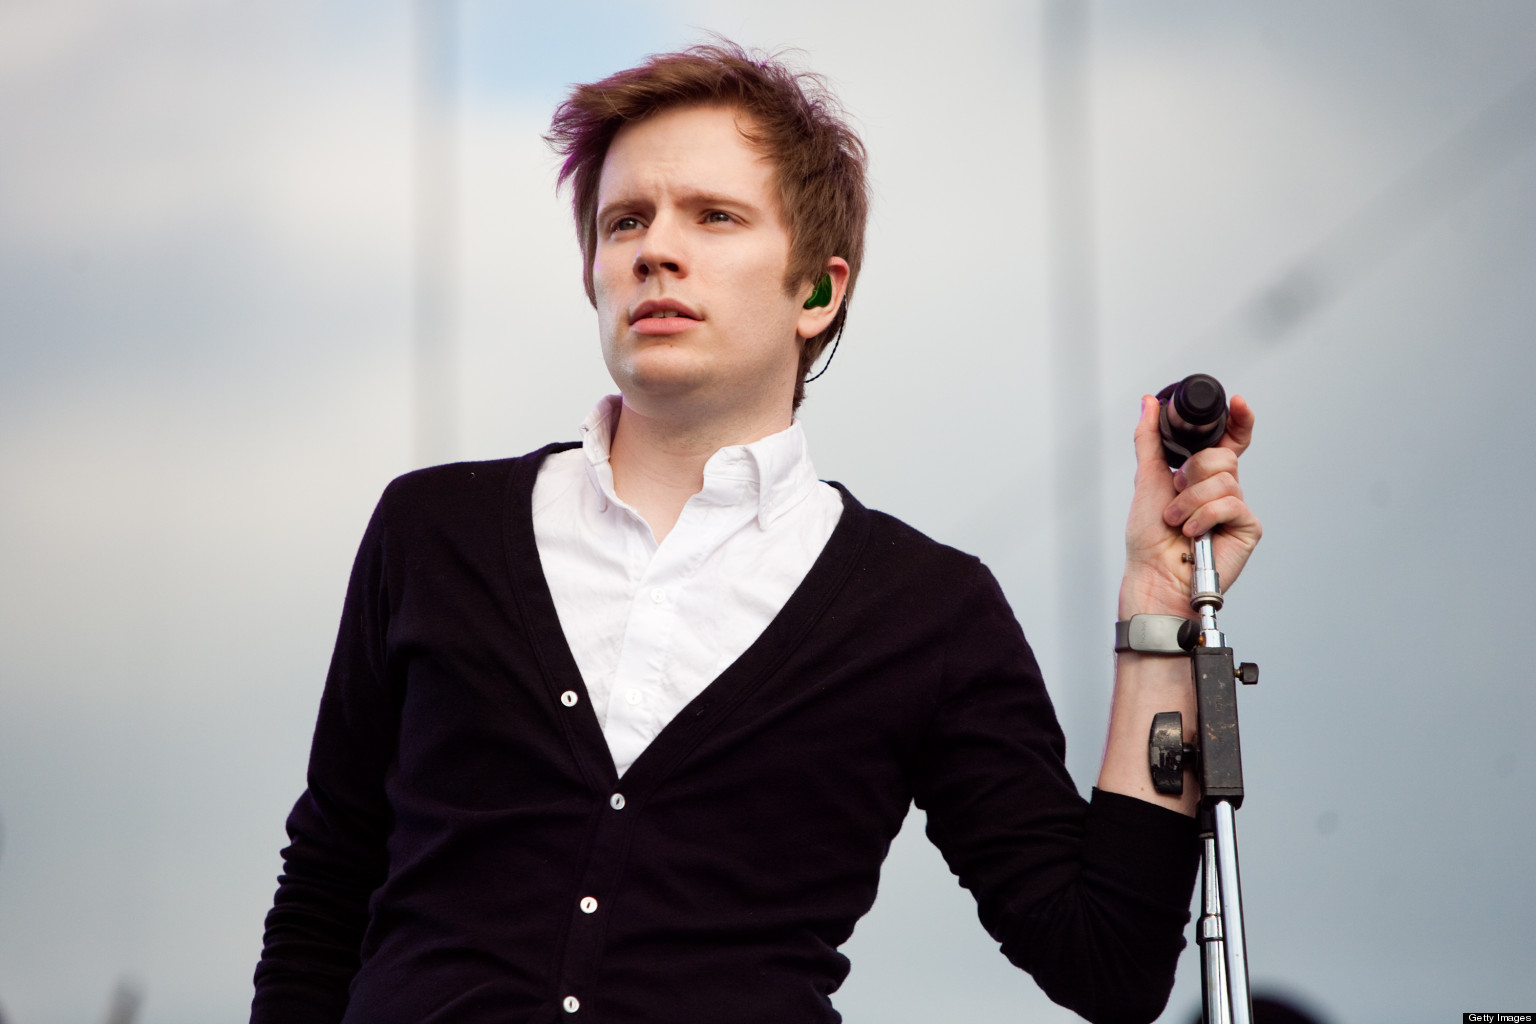 The 33-year old son of father (?) and mother(?), 182 cm tall Patrick Stump in 2017 photo